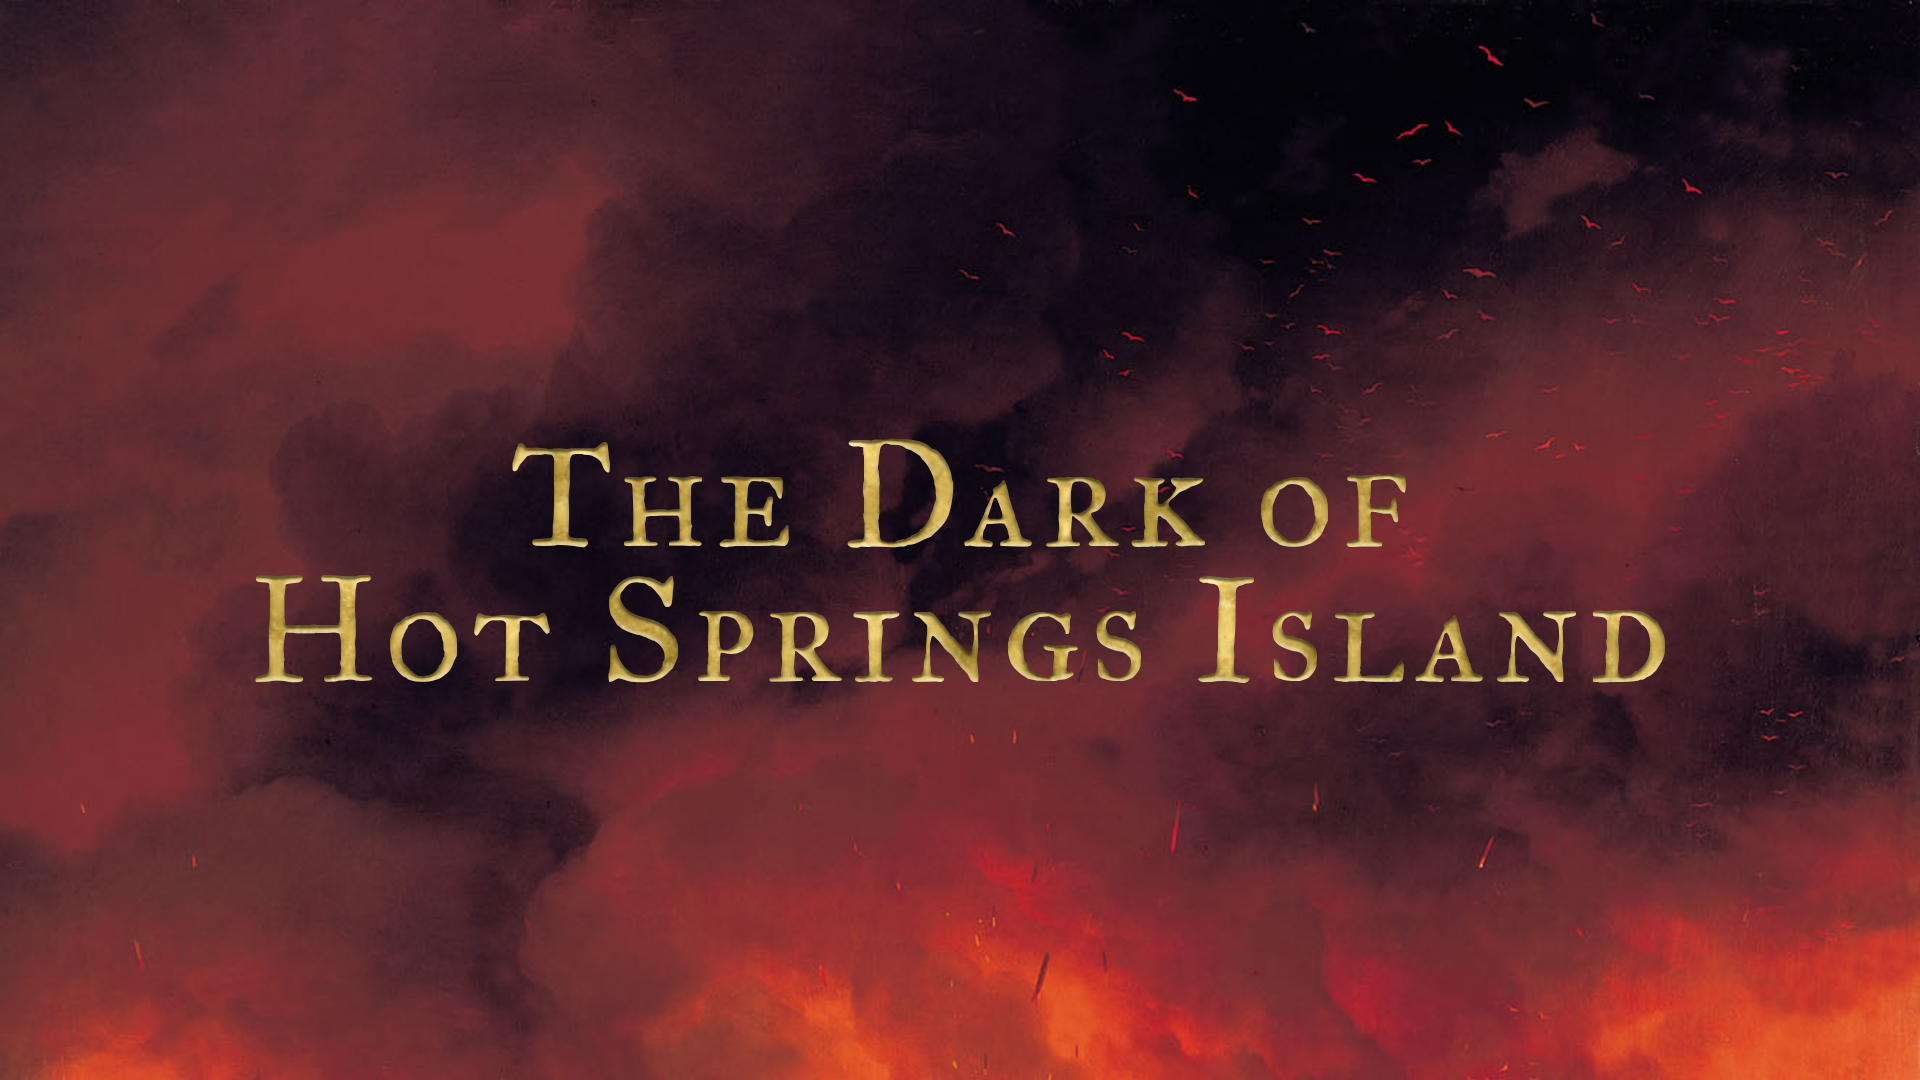 The Dark of Hot Springs Island